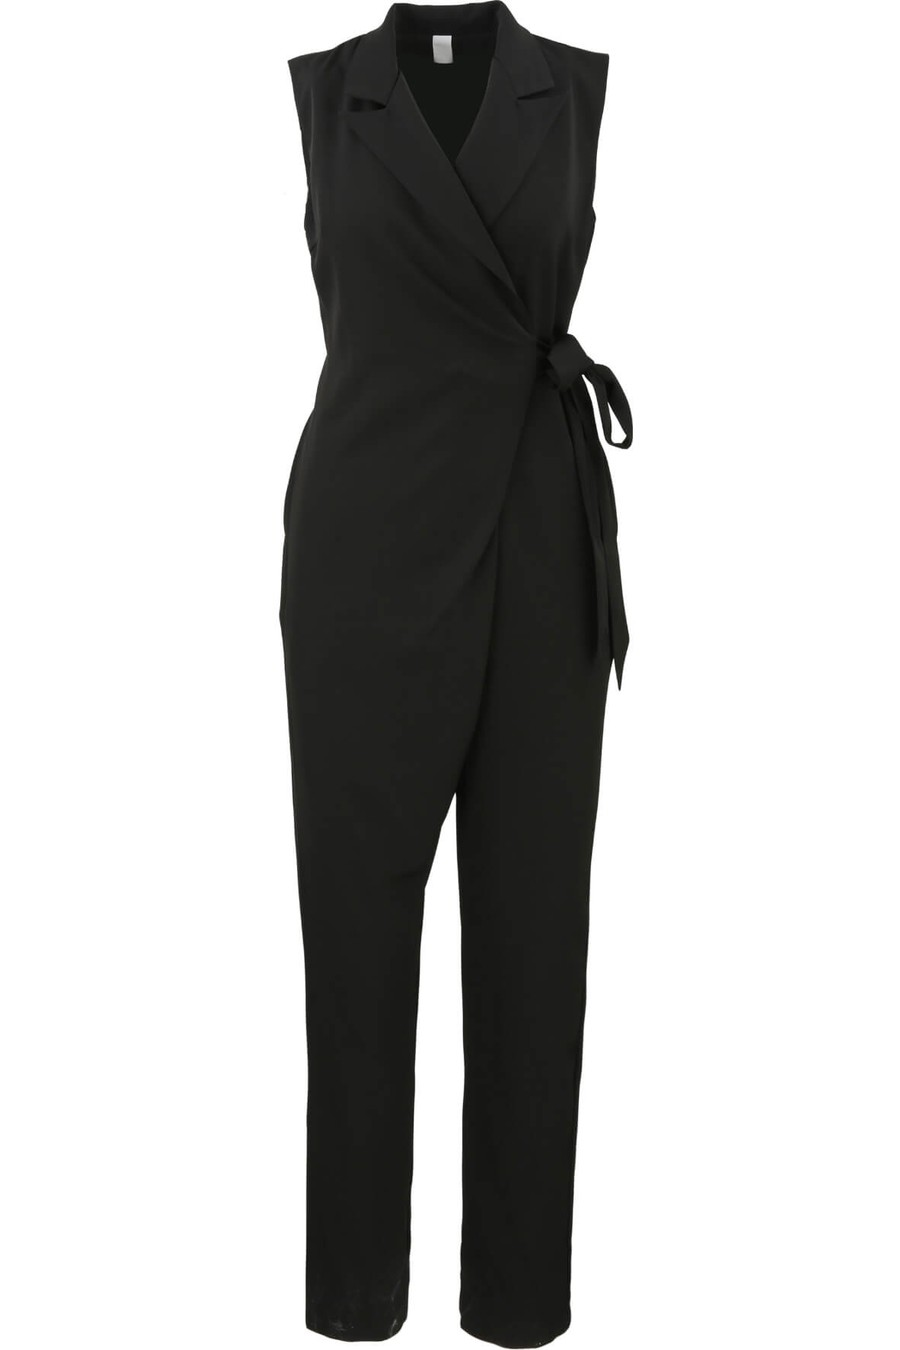 blessed-dwell-jumpsuit-1 (1)